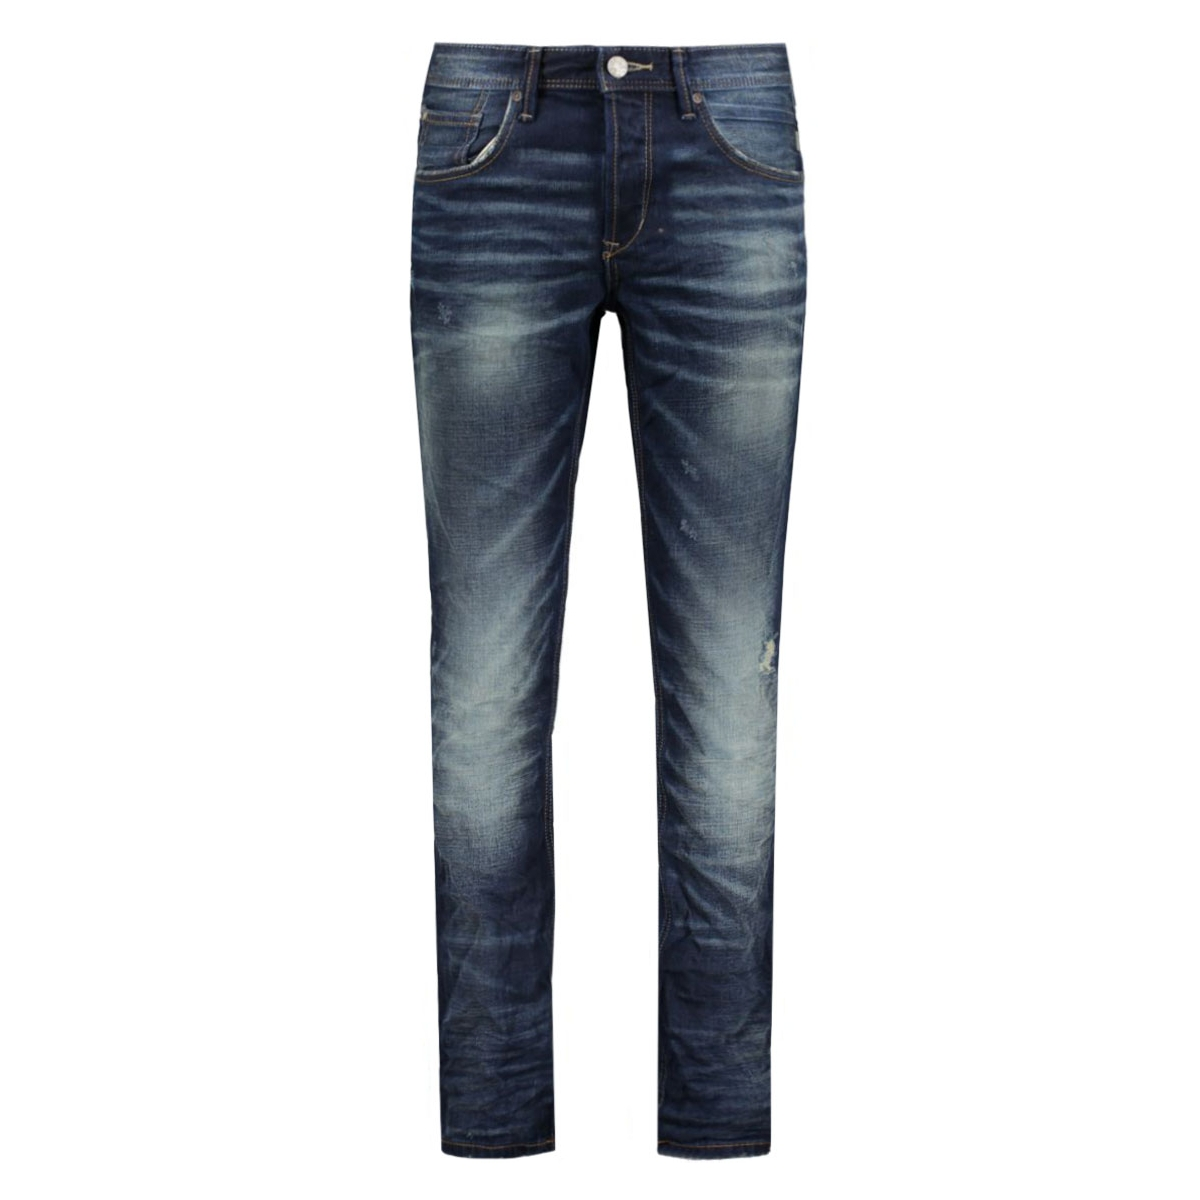 6204161.00.12 tom tailor jeans 1075